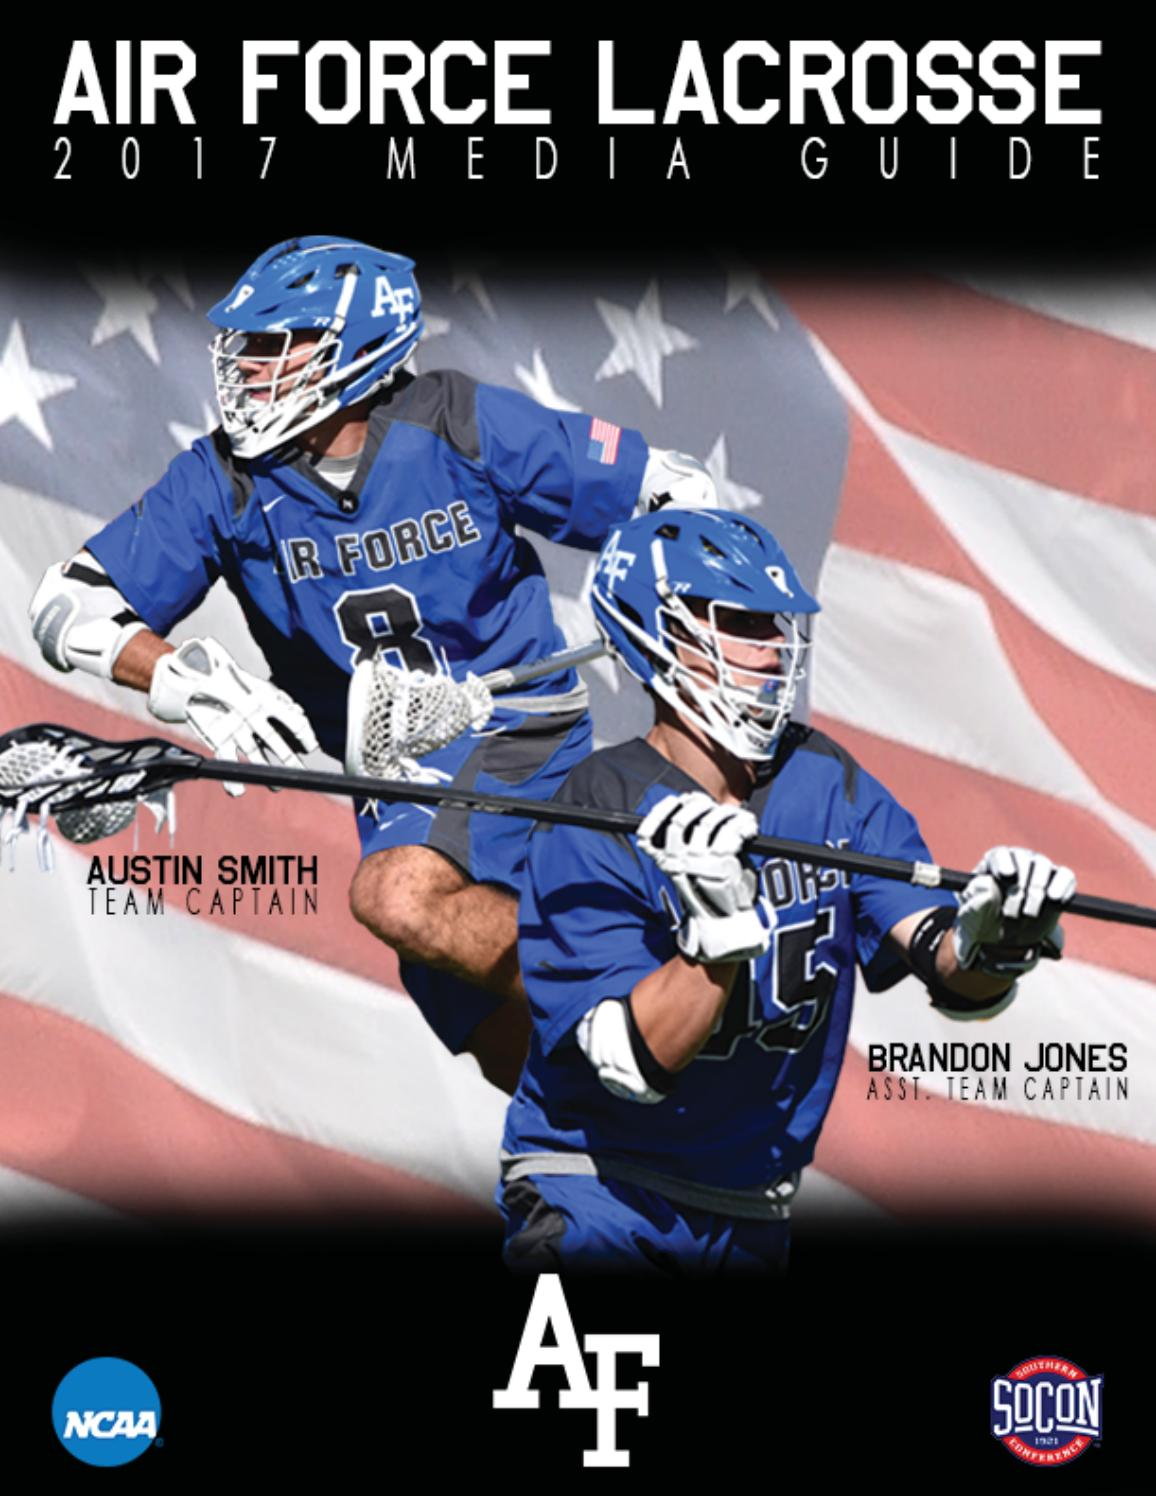 2017 Air Force Lacrosse Media Guide By Air Force Media Relations Issuu